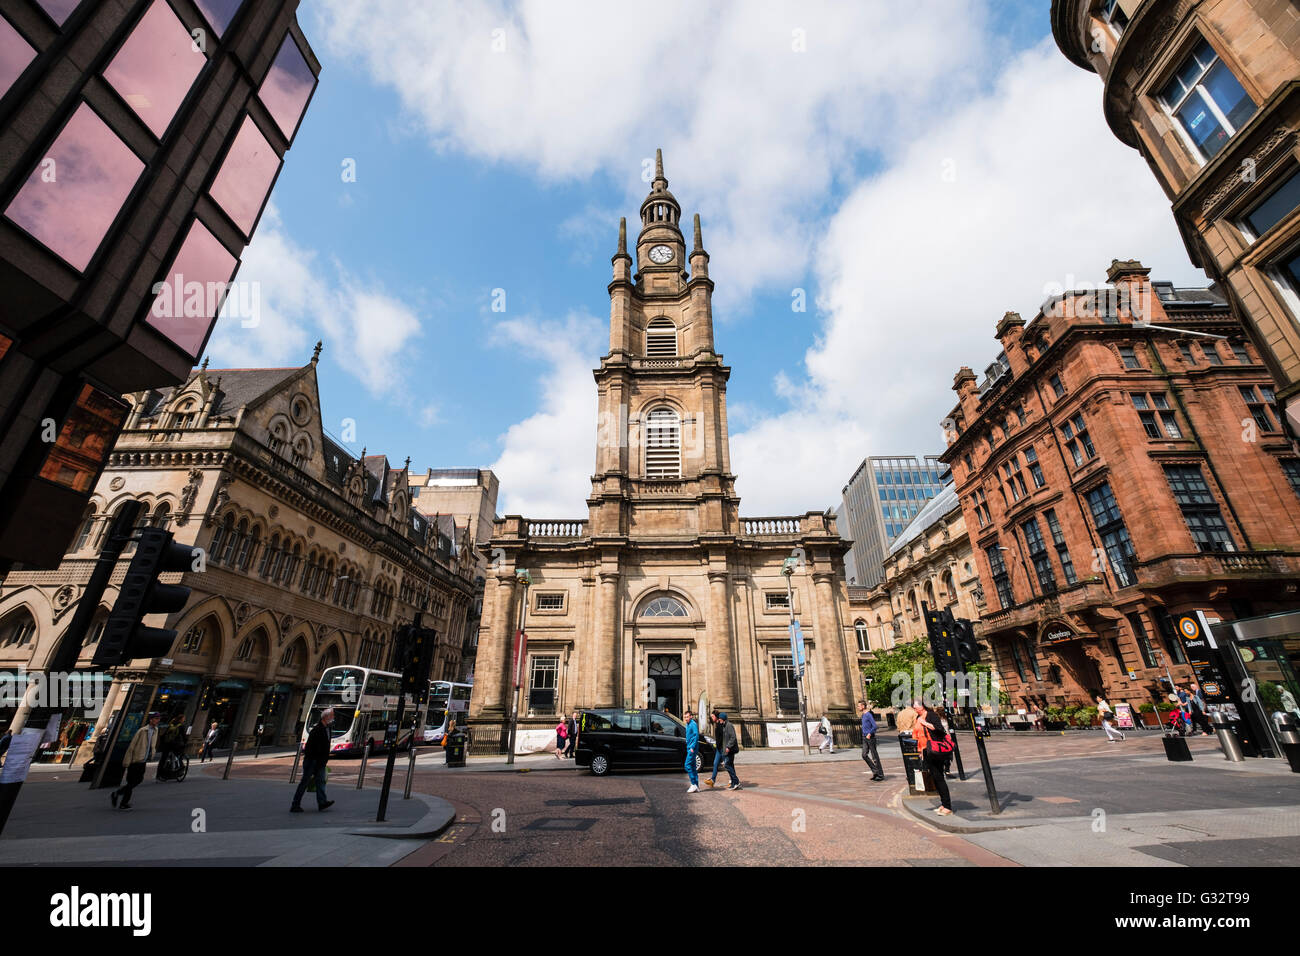 View of St George's Tron Church of Scotland and Nelson Mandela Place in central Glasgow, Scotland, United kingdom - Stock Image